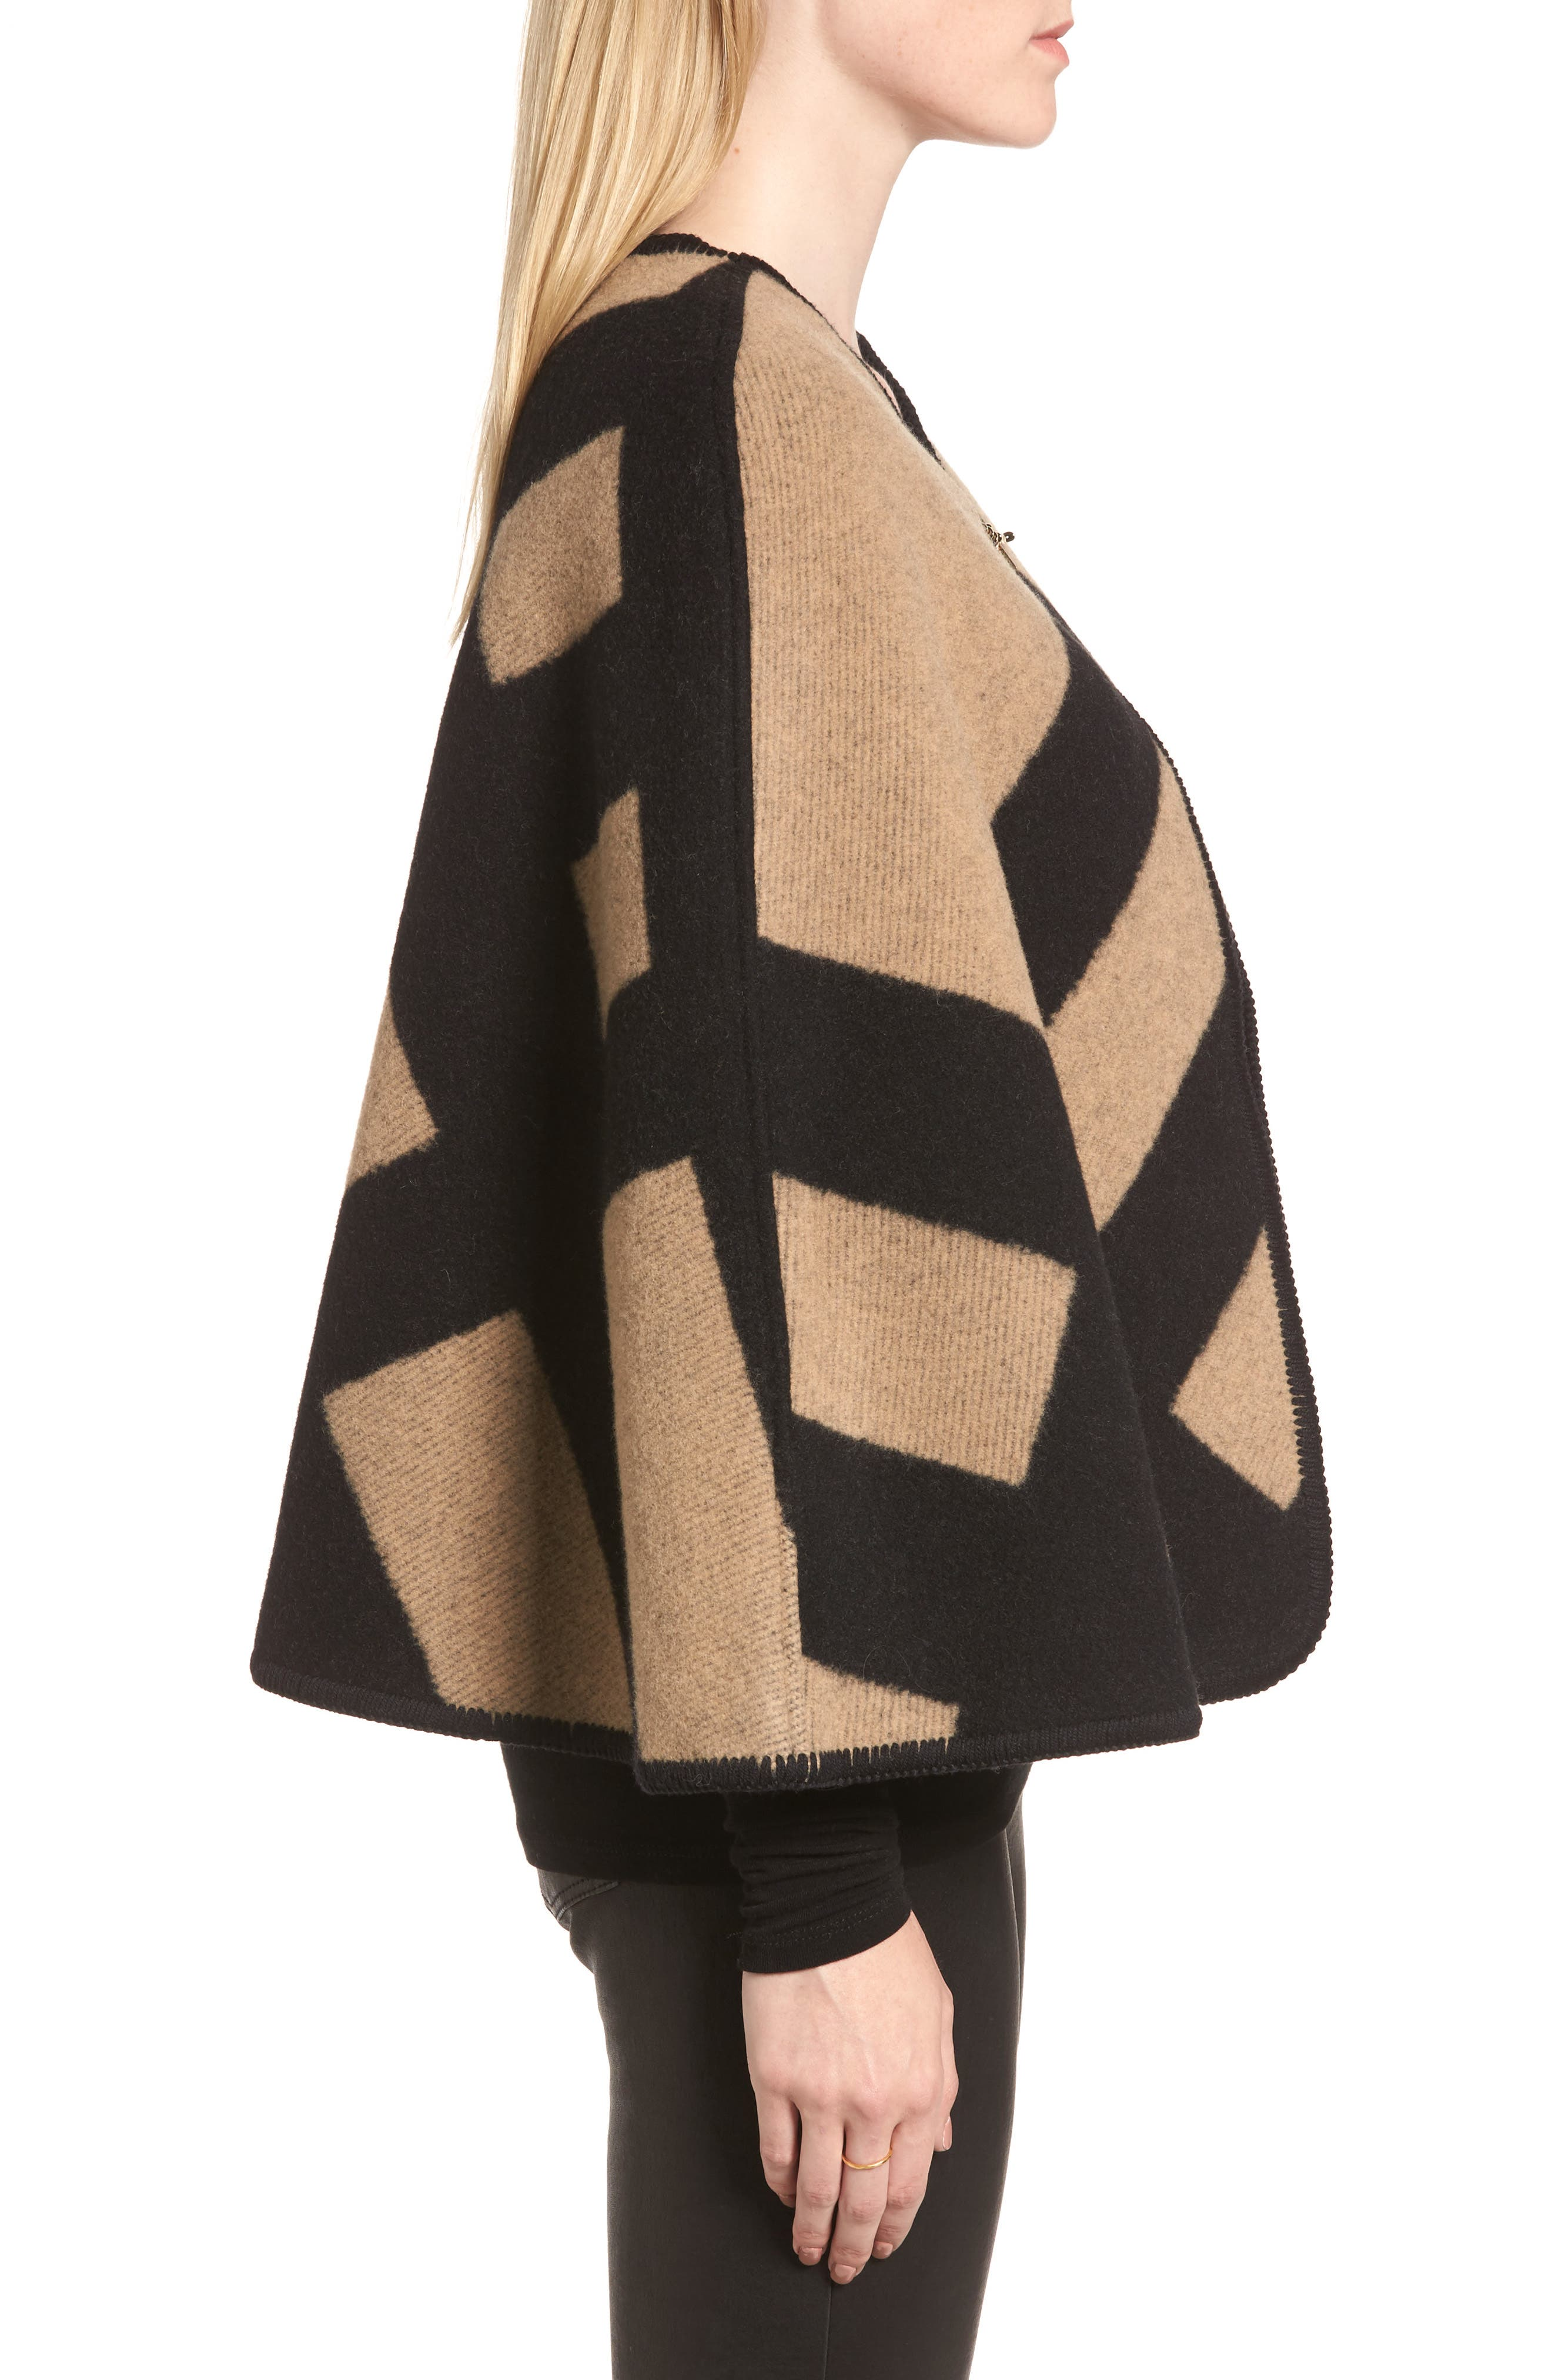 Blanket Check Wool & Cashmere Poncho,                             Alternate thumbnail 3, color,                             231